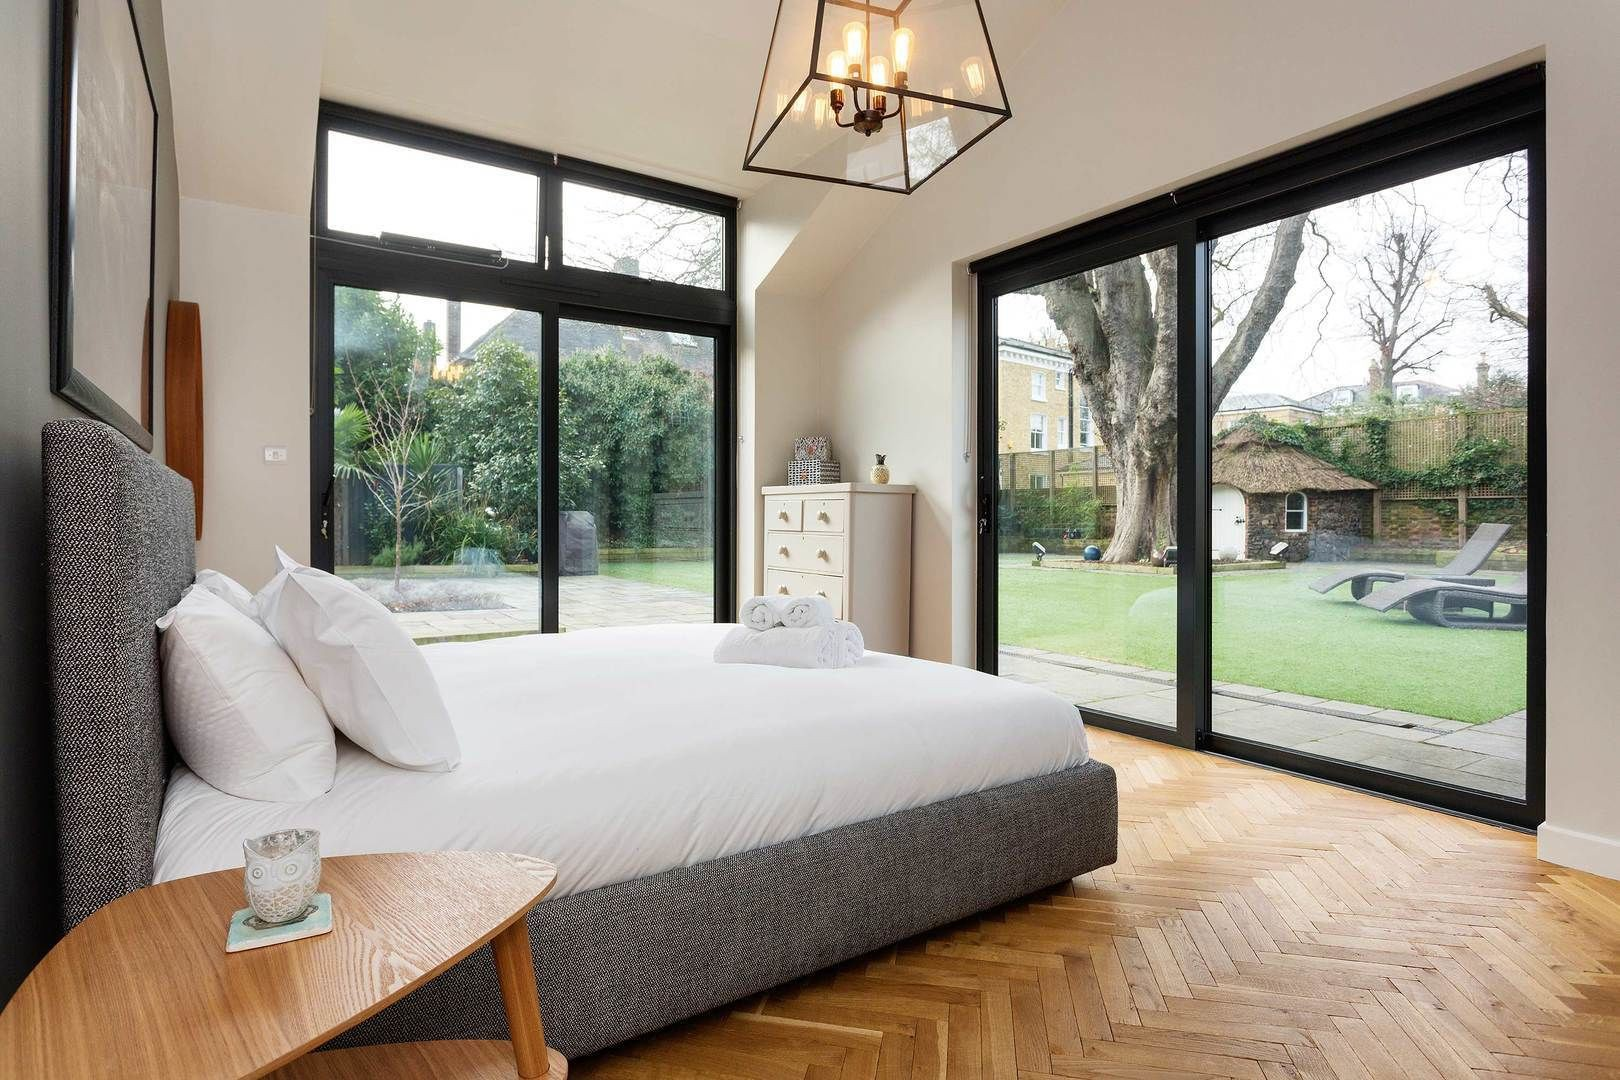 Courtesy of Veeve – the Coach House / Expedia